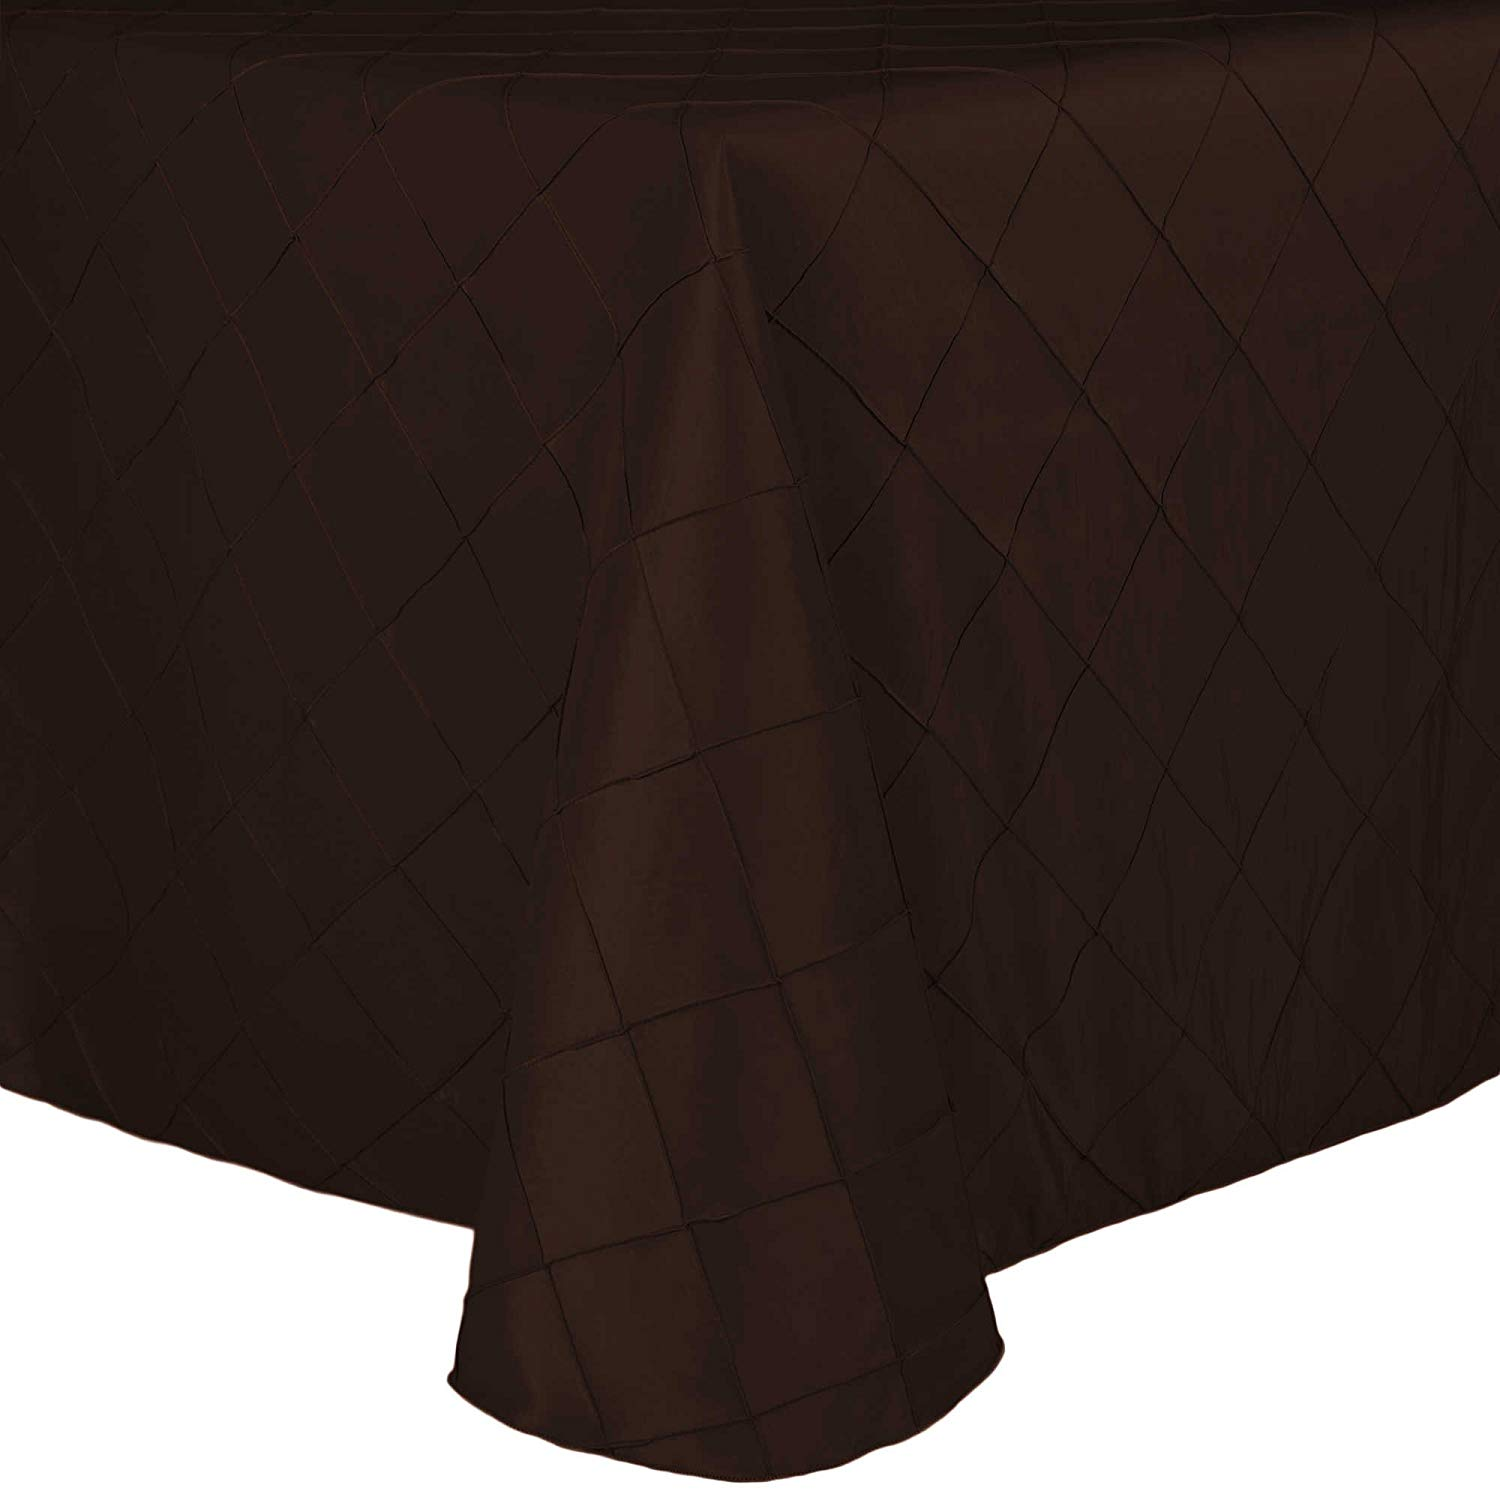 Ultimate Textile (10 Pack) Embroidered Pintuck Taffeta 90 x 132-Inch Rectangle Tablecloth with Rounded Corners Espresso Dark Brown